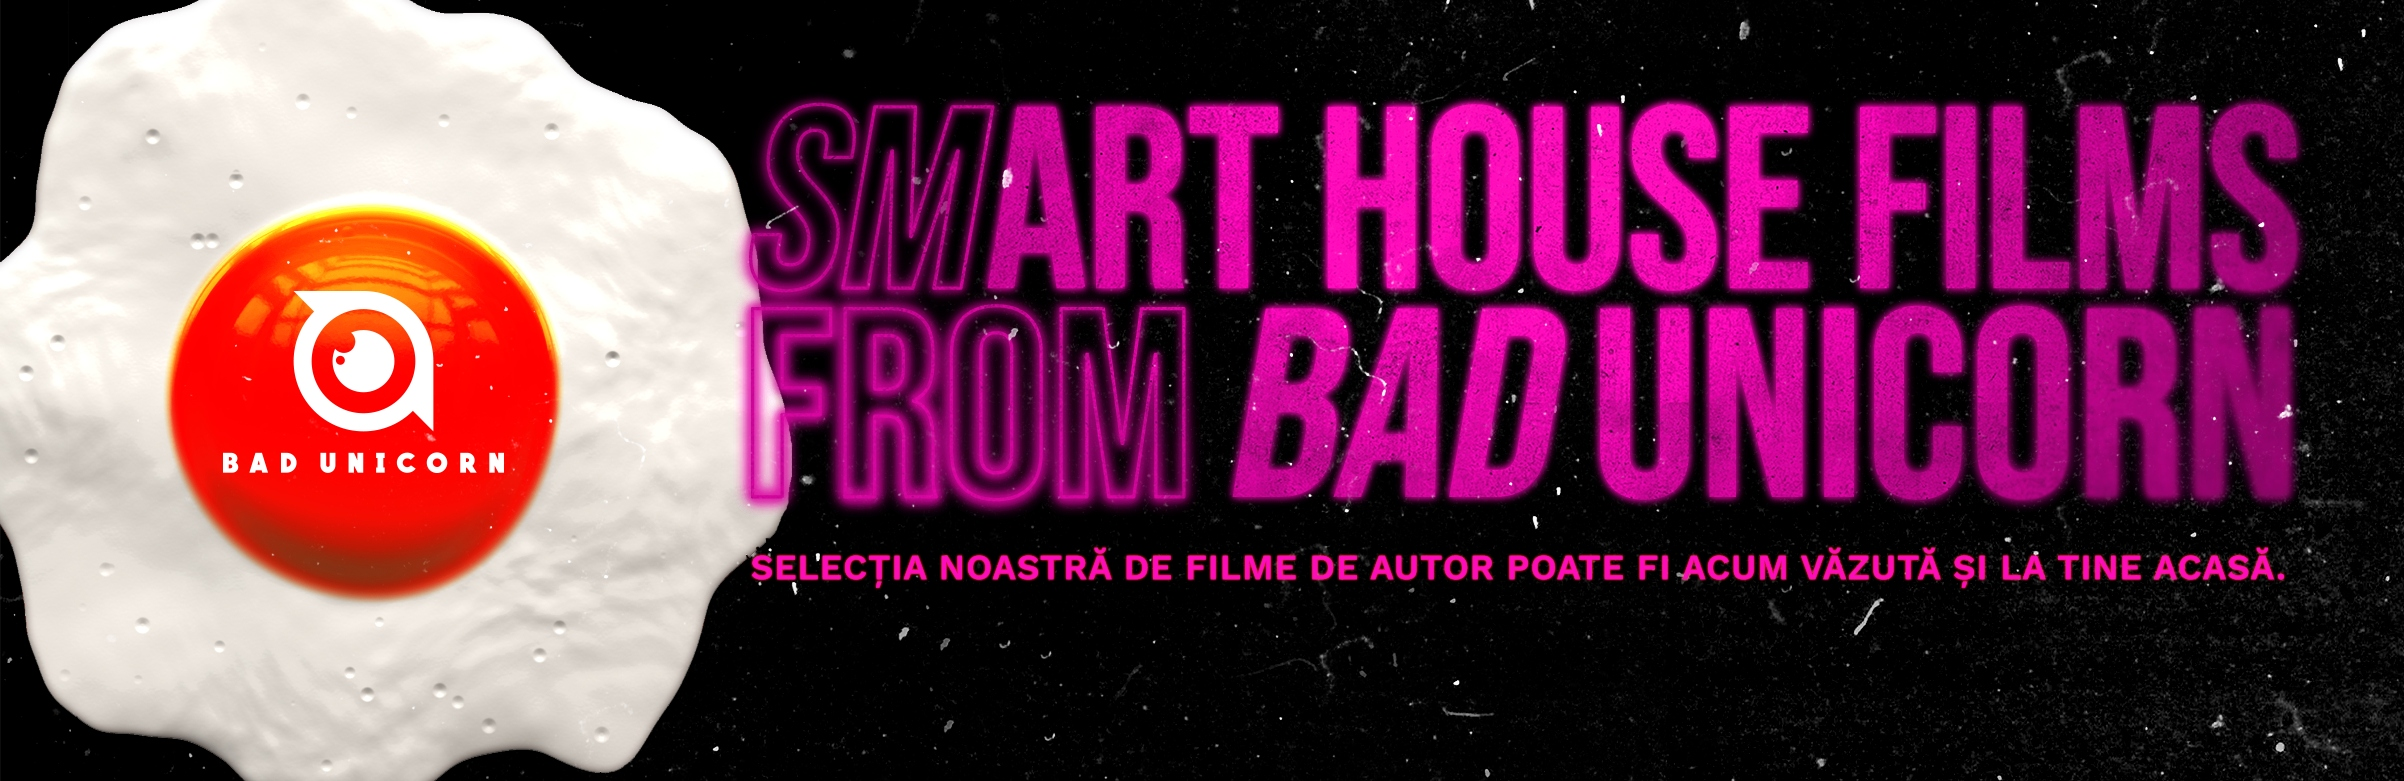 smART HOUSE films from Bad Unicorn